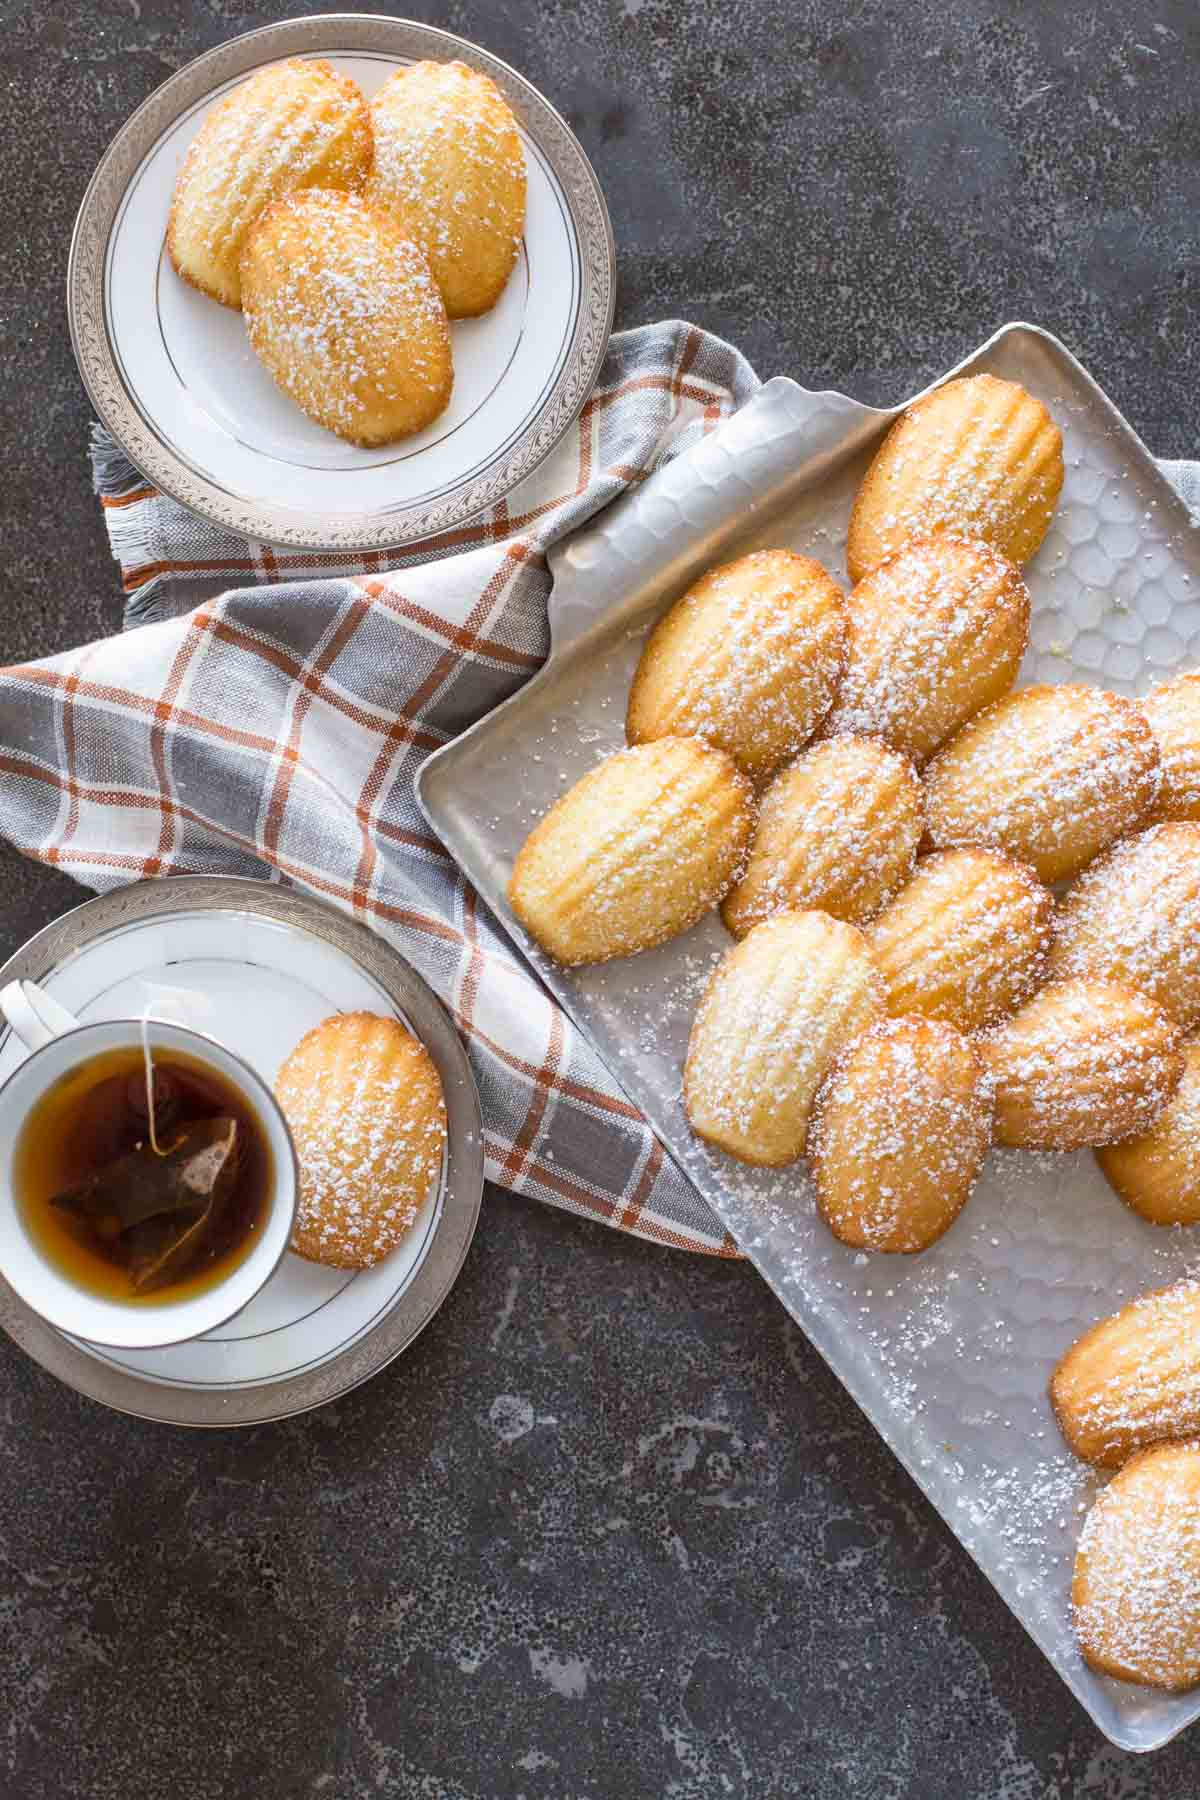 Overhead view of a platter of Lemon Vanilla Madeleines with a cup of tea.